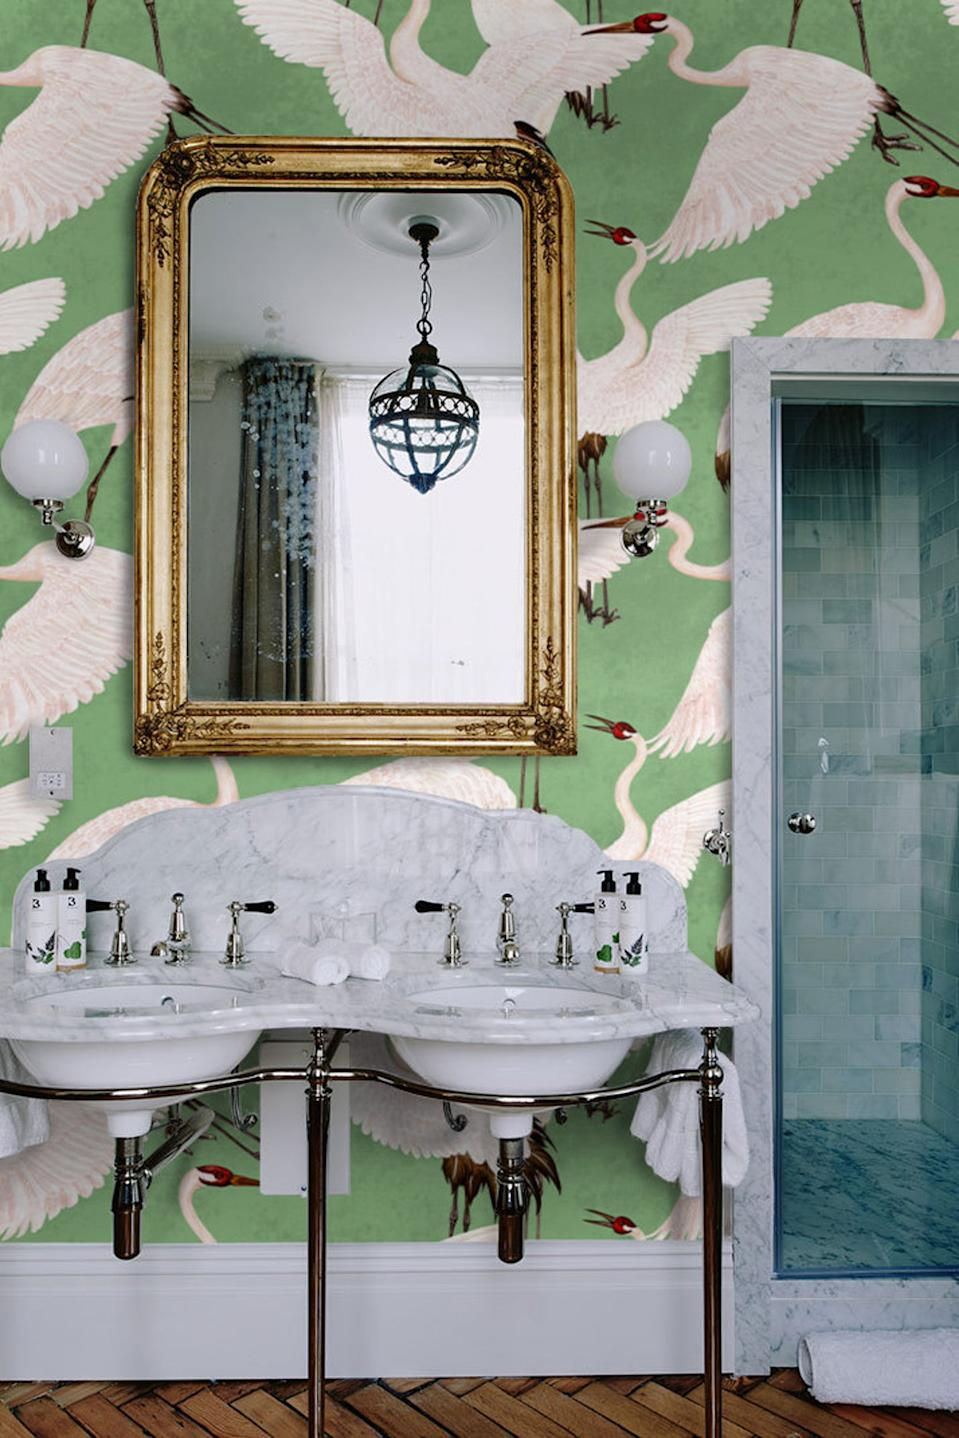 Removable wallpaper in a bathroom